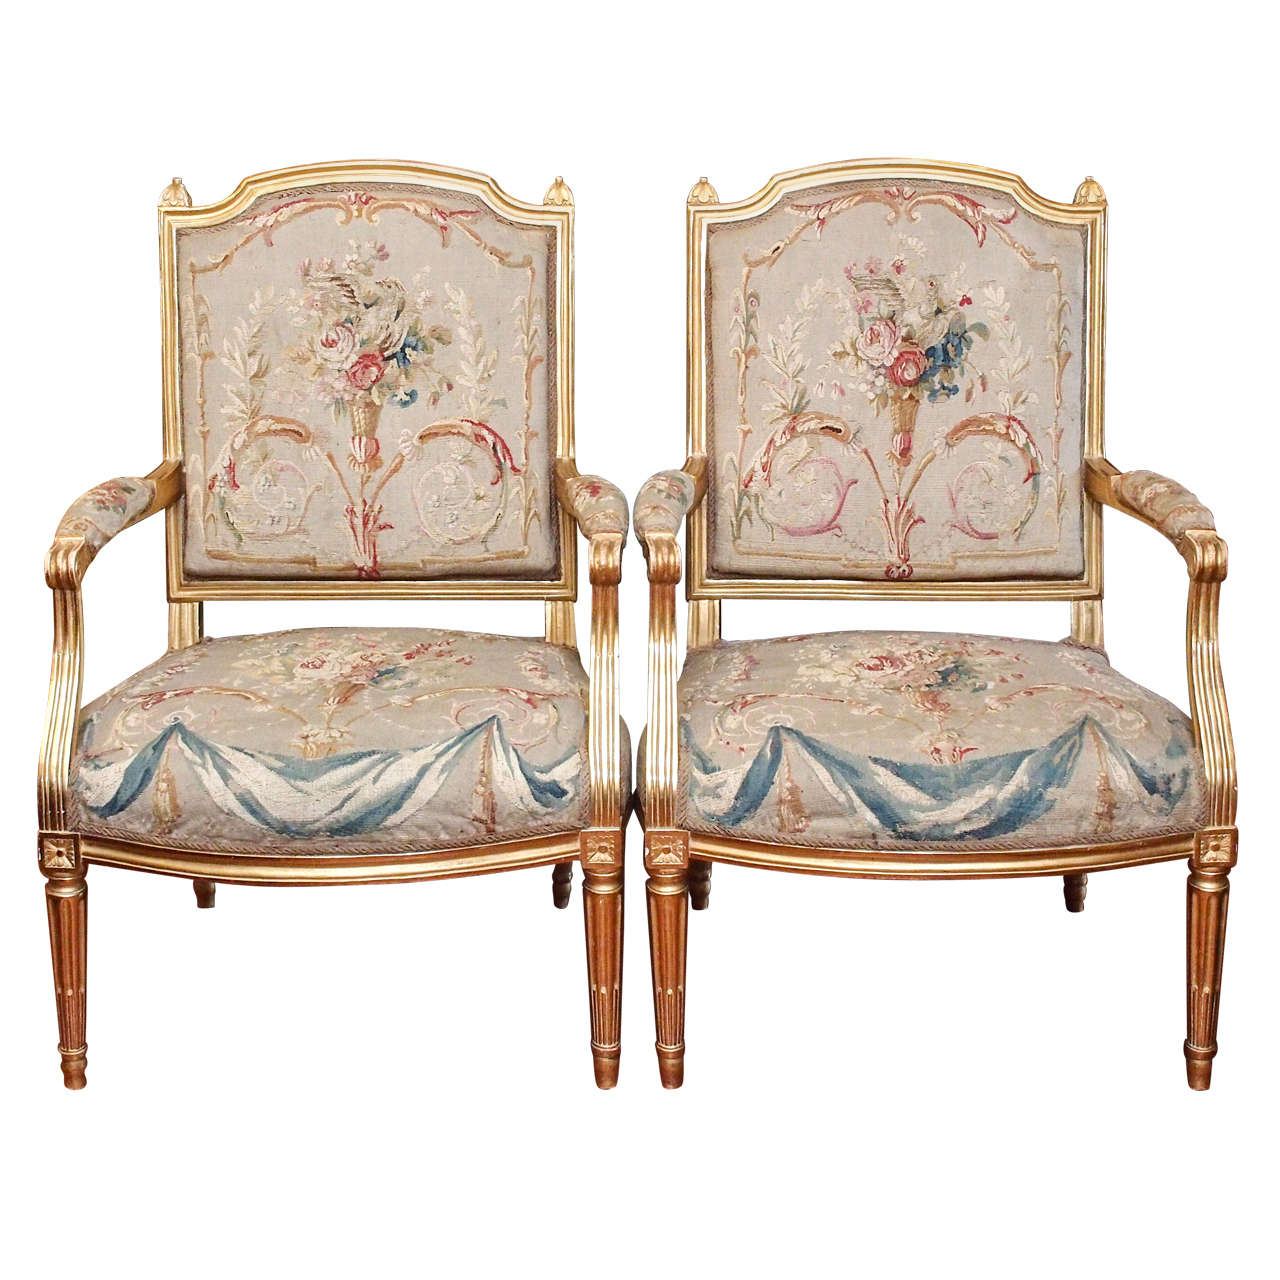 Pair Of Louis XVI Gilt Wood Fauteuil With Aubusson Covering 1